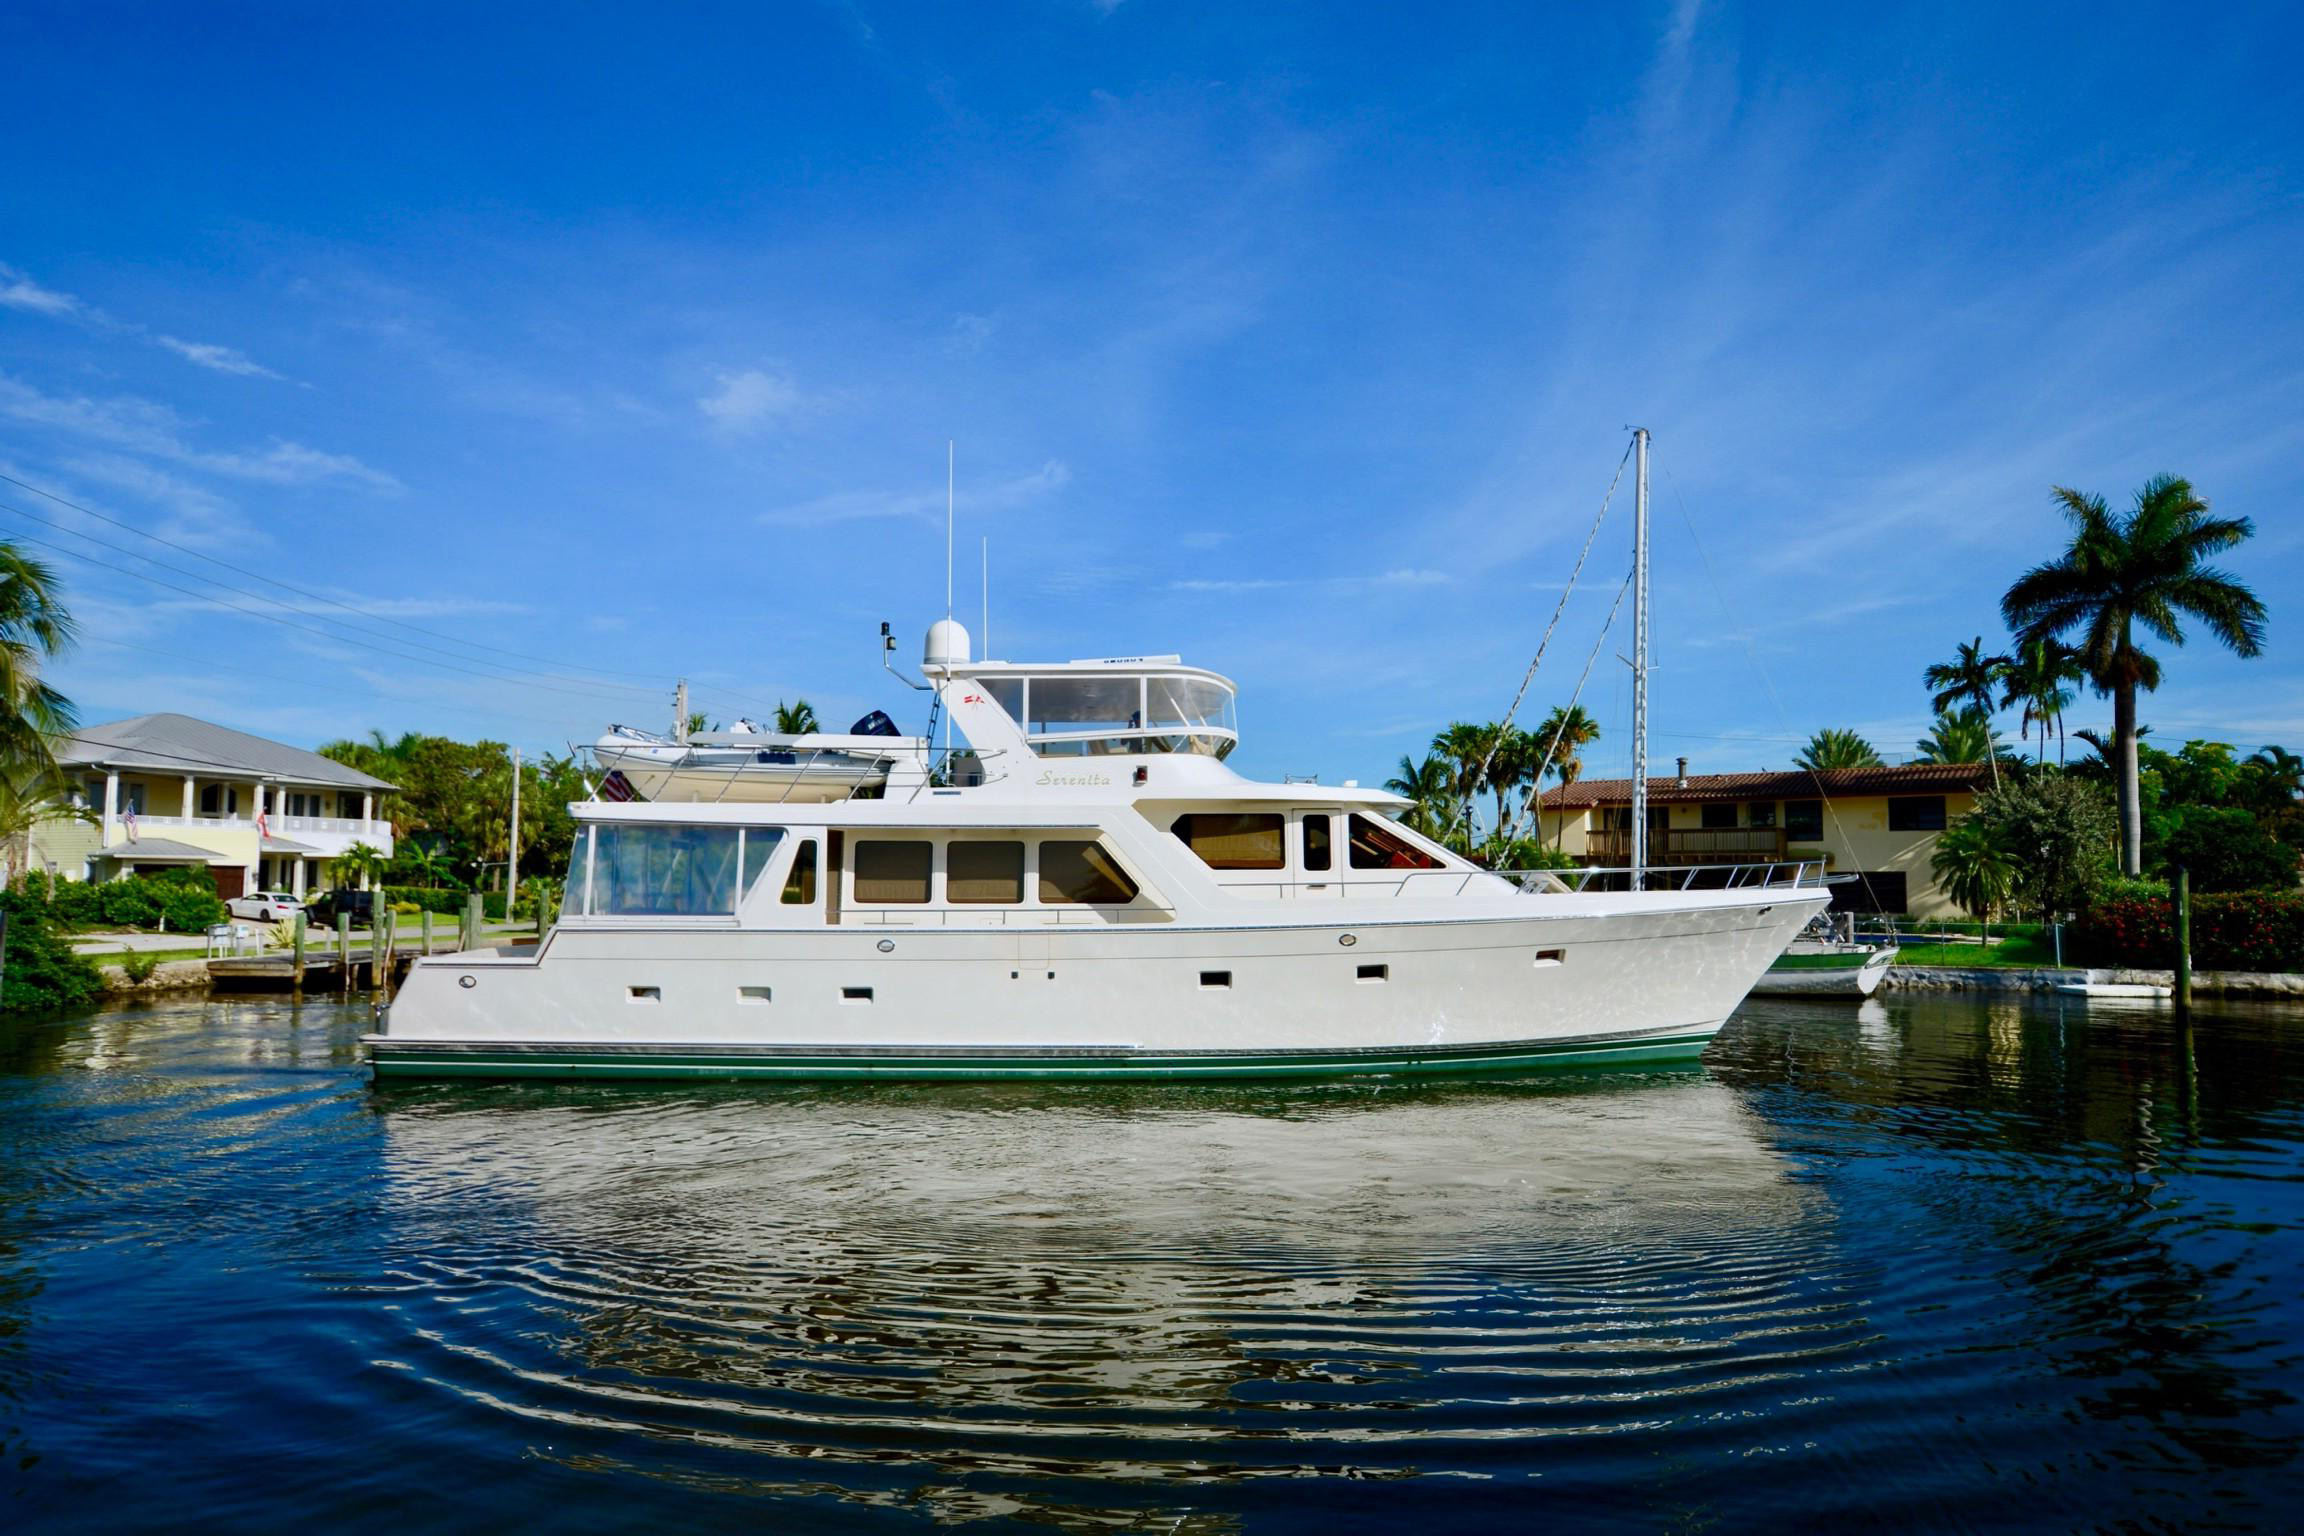 SERENITA specs with detailed specification and builder summary